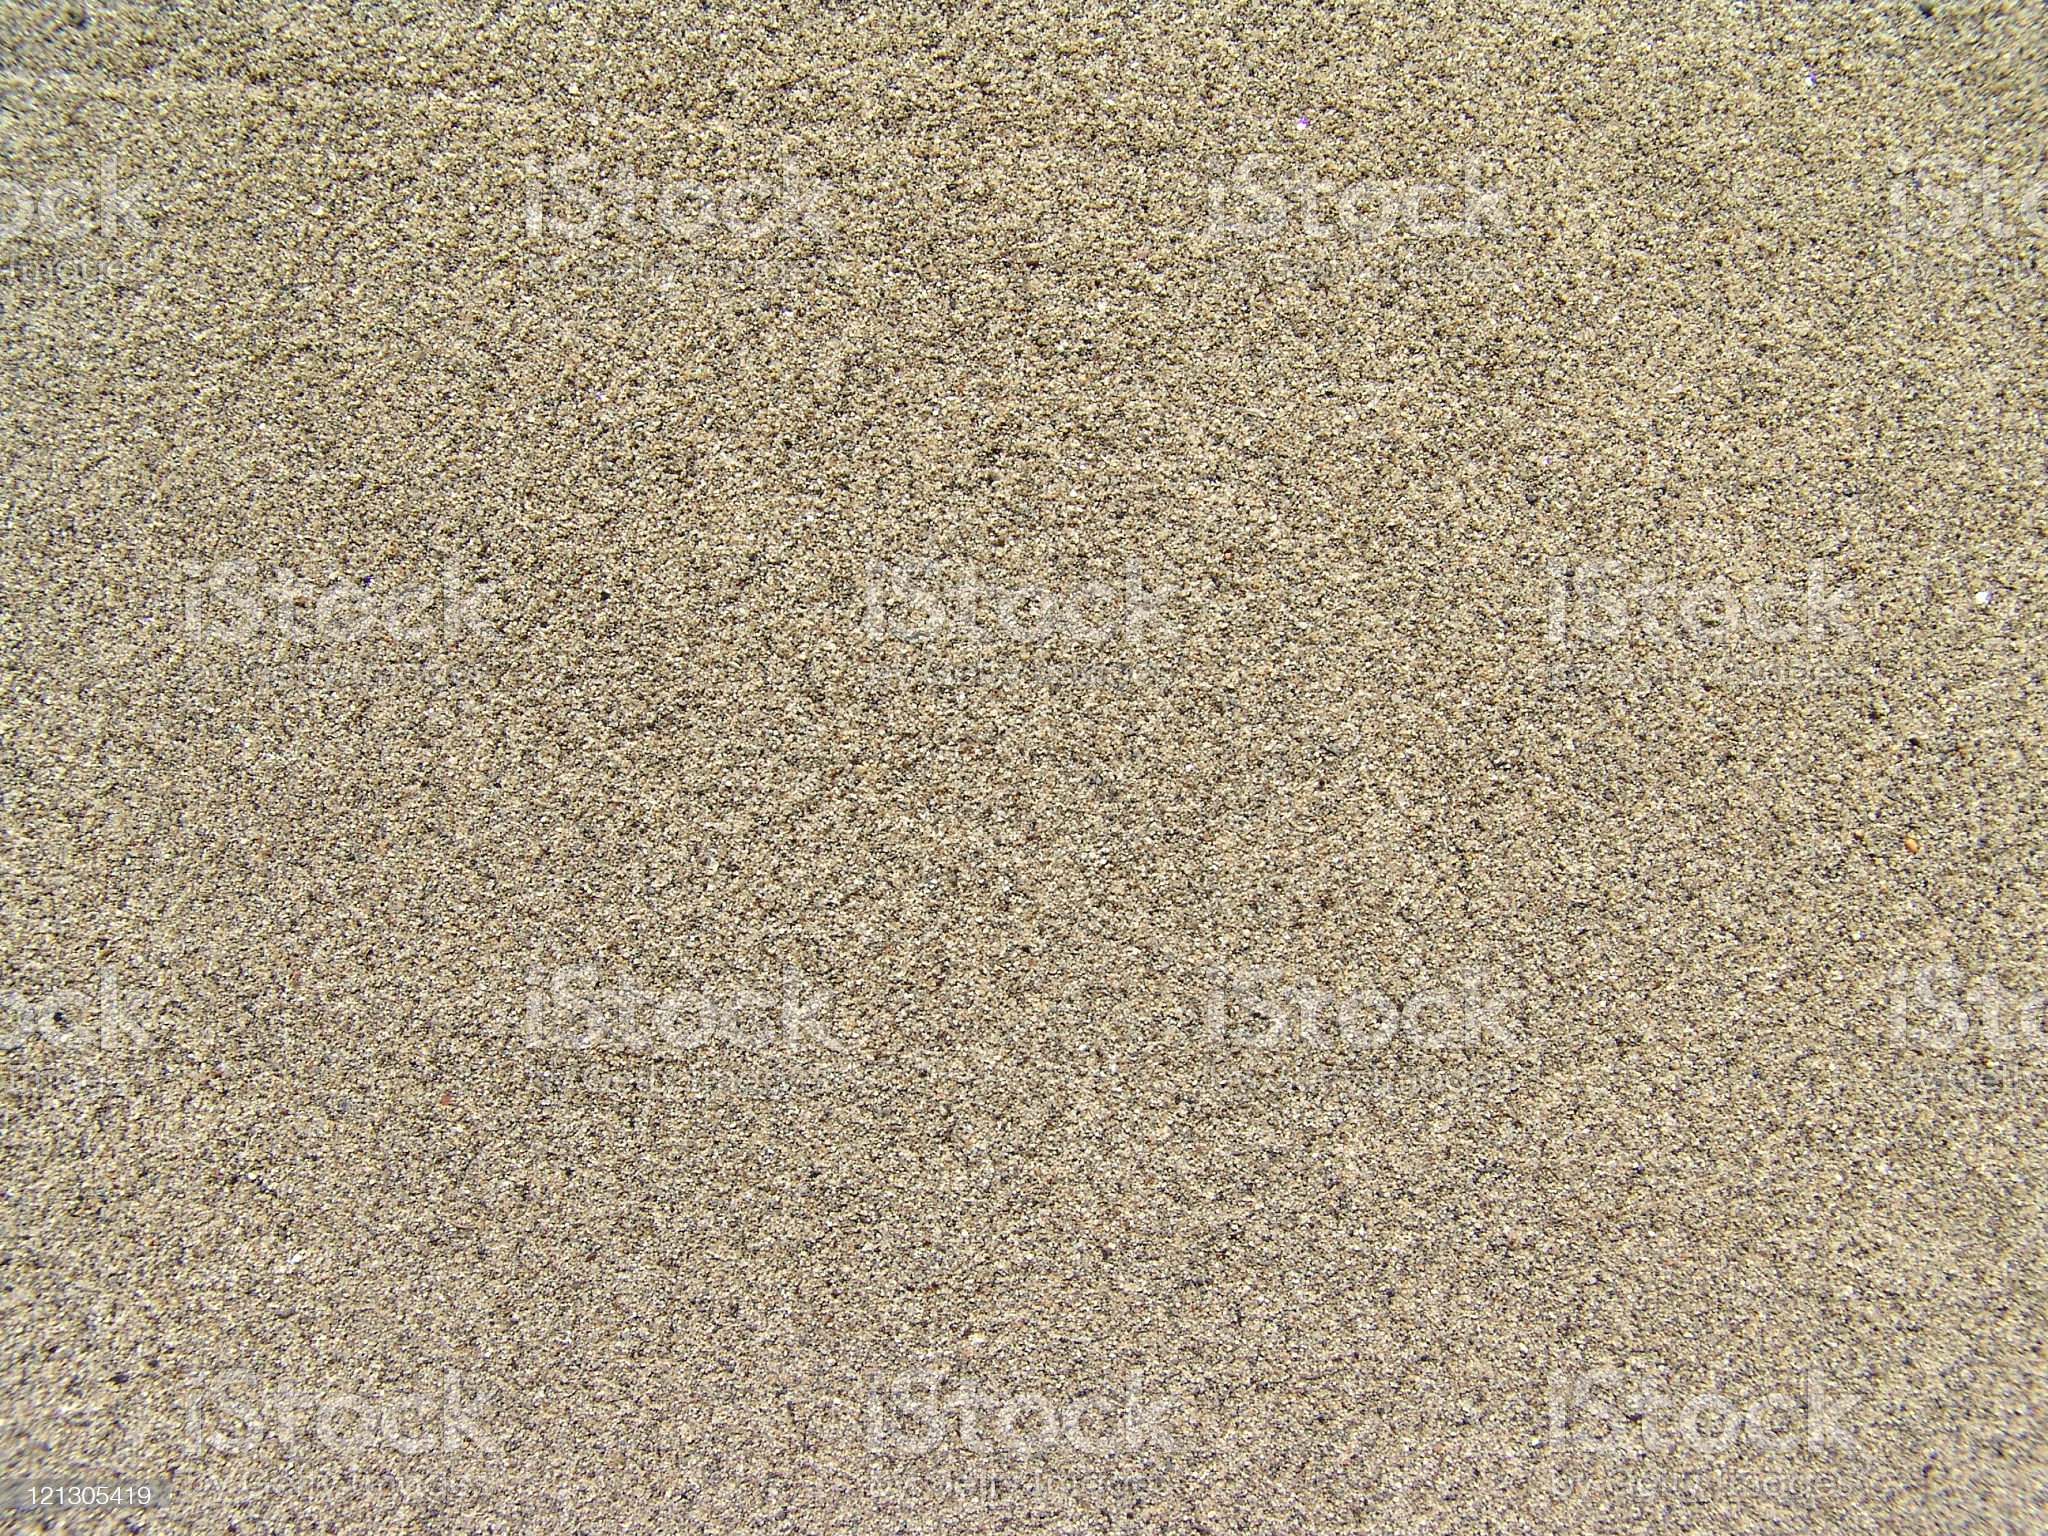 Background image of flat speckled tan sand royalty-free stock photo